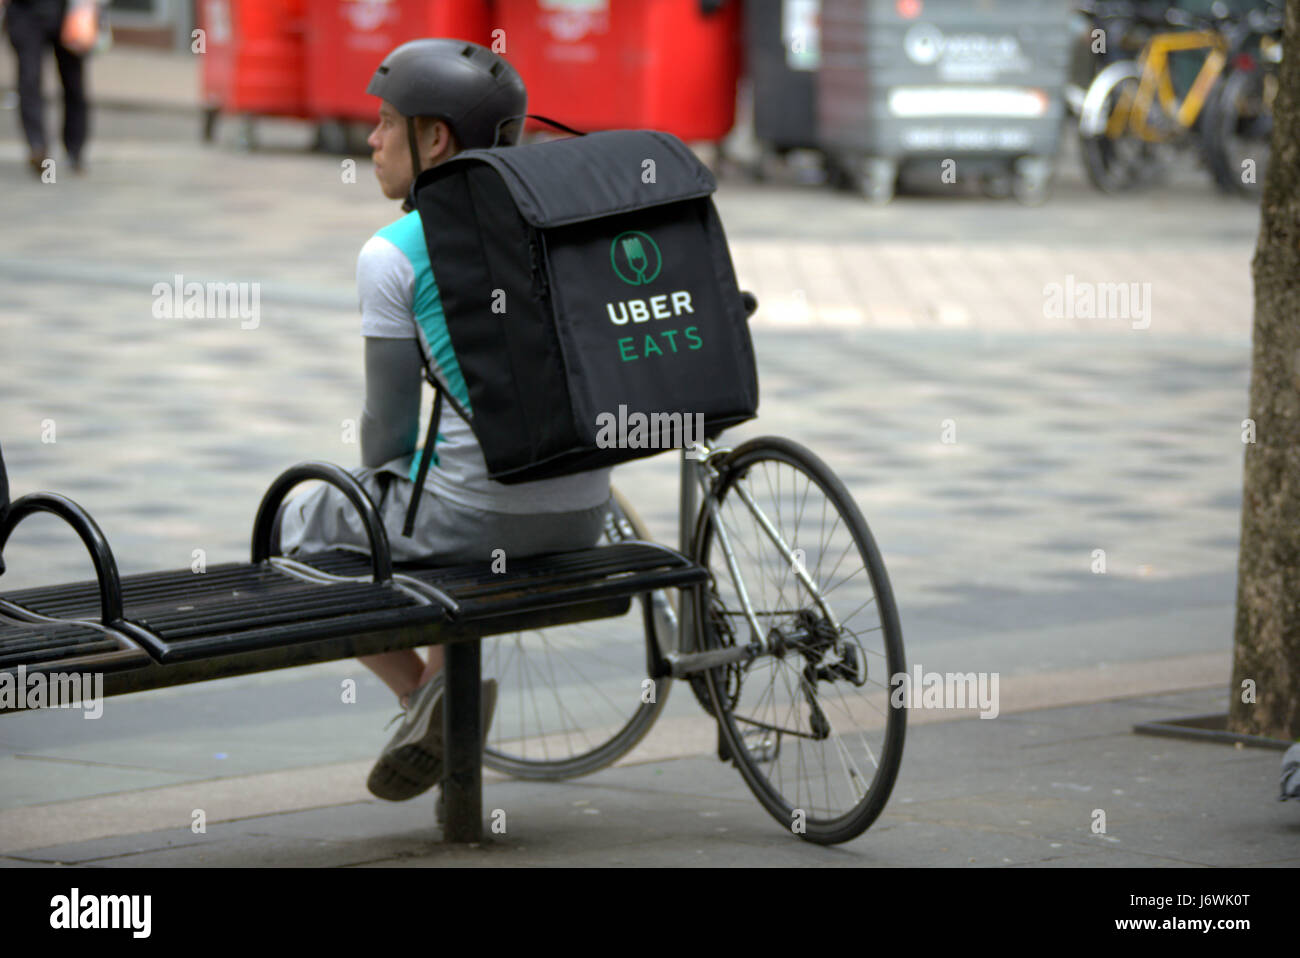 Uber Food Delivery